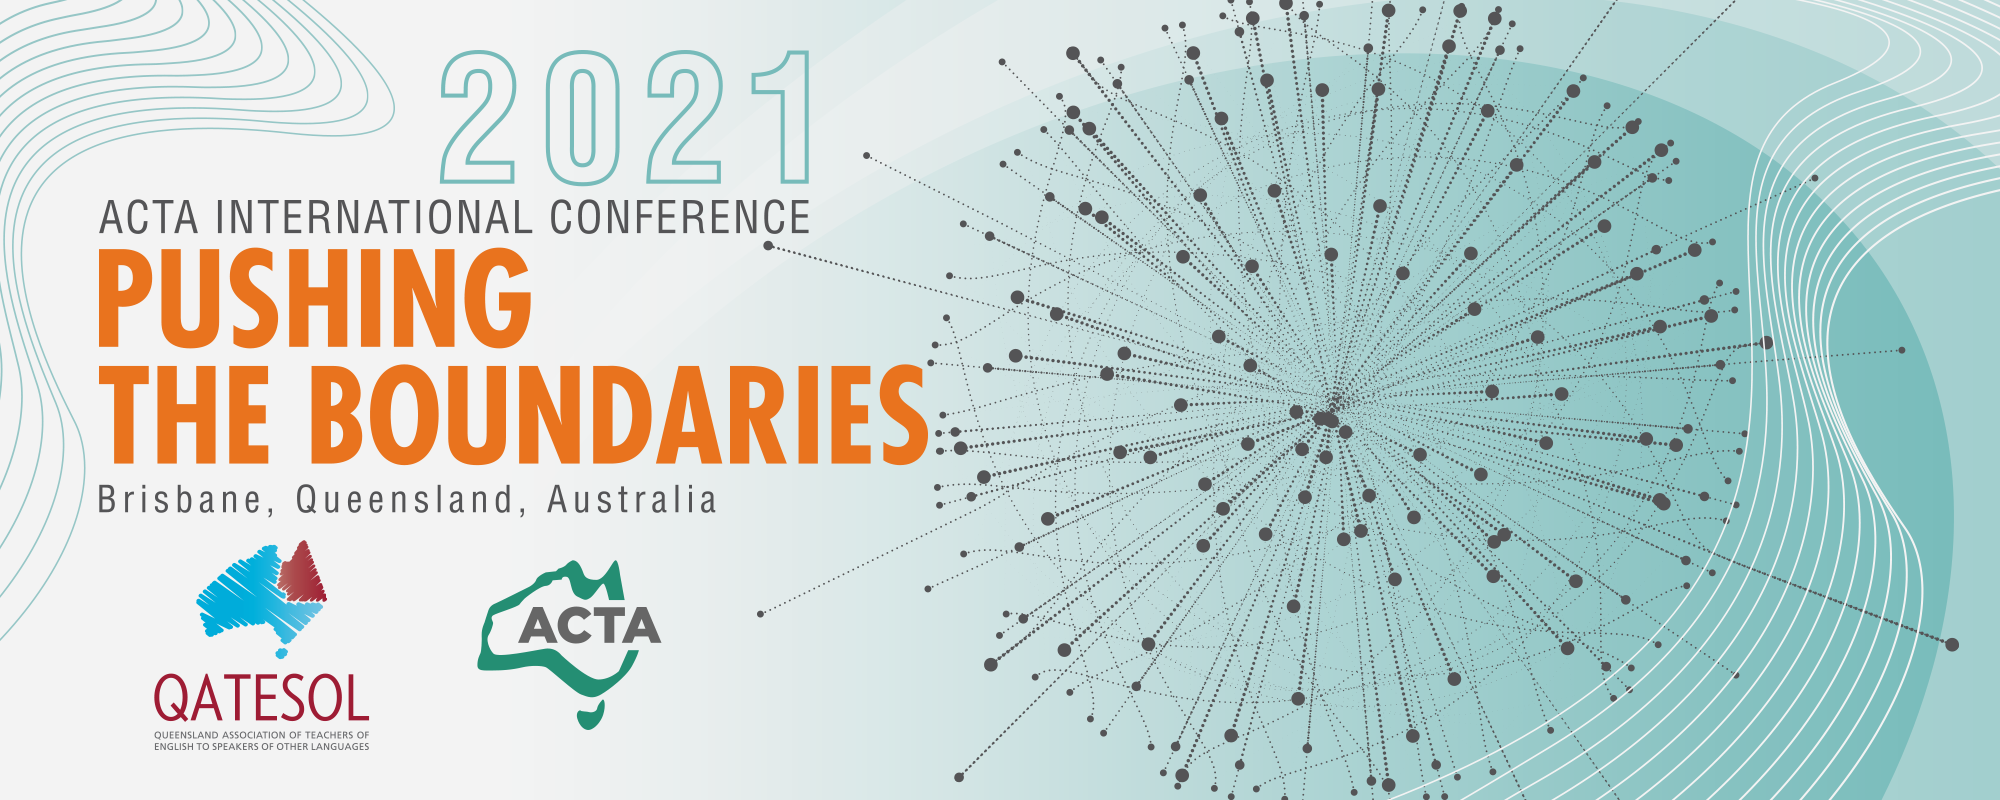 ACTA Conference 2021 Banner with logos